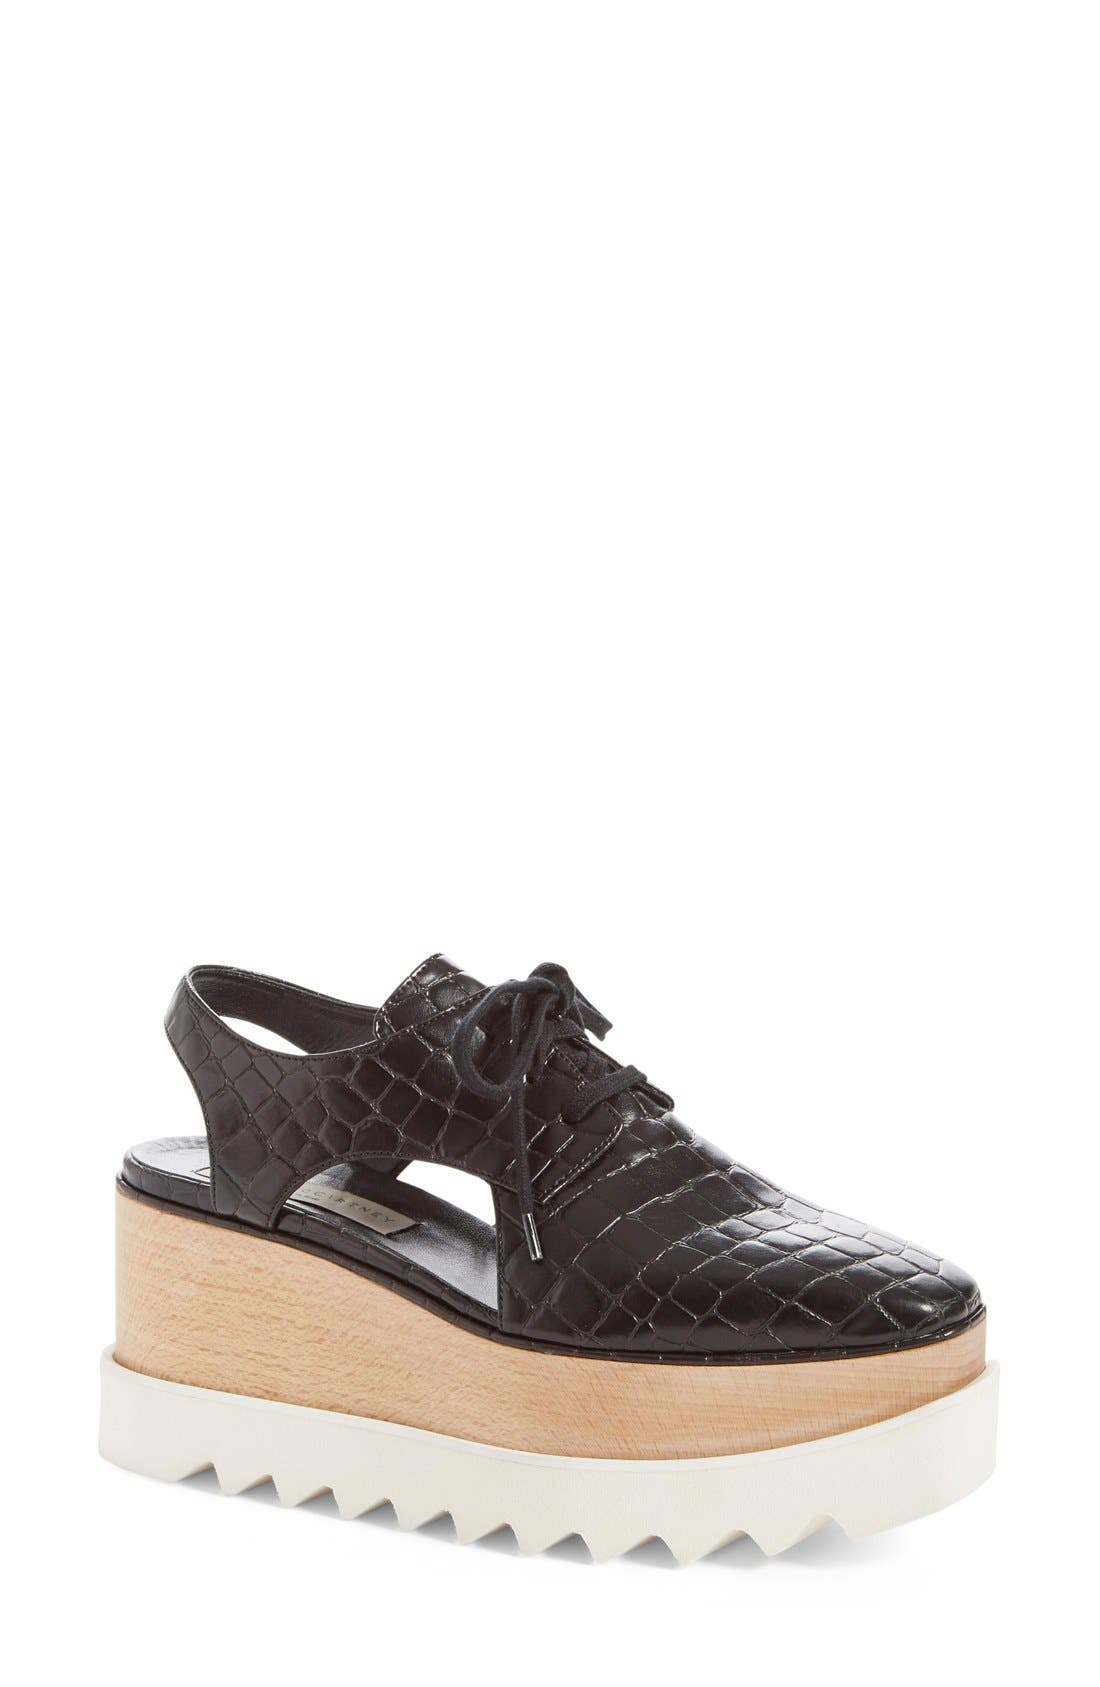 Alternate Image 1 Selected - Stella McCartney 'Elyse' Cutout Platform Oxford (Women)